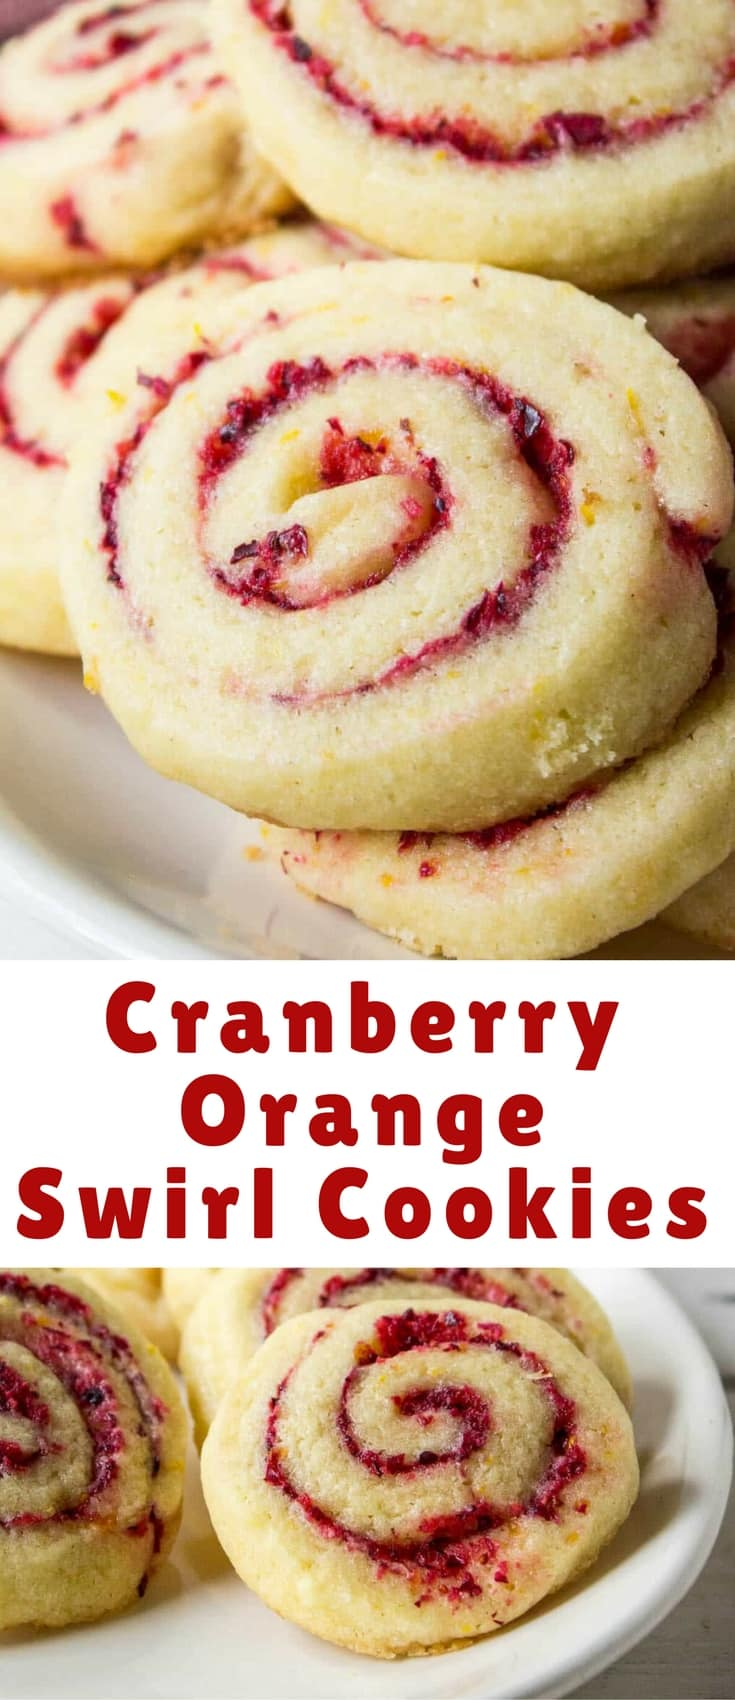 Cranberry Orange Swirl Cookies are pure deliciousness! This is a sugar cookie dough with added orange peel and a fresh cranberry and orange filling!